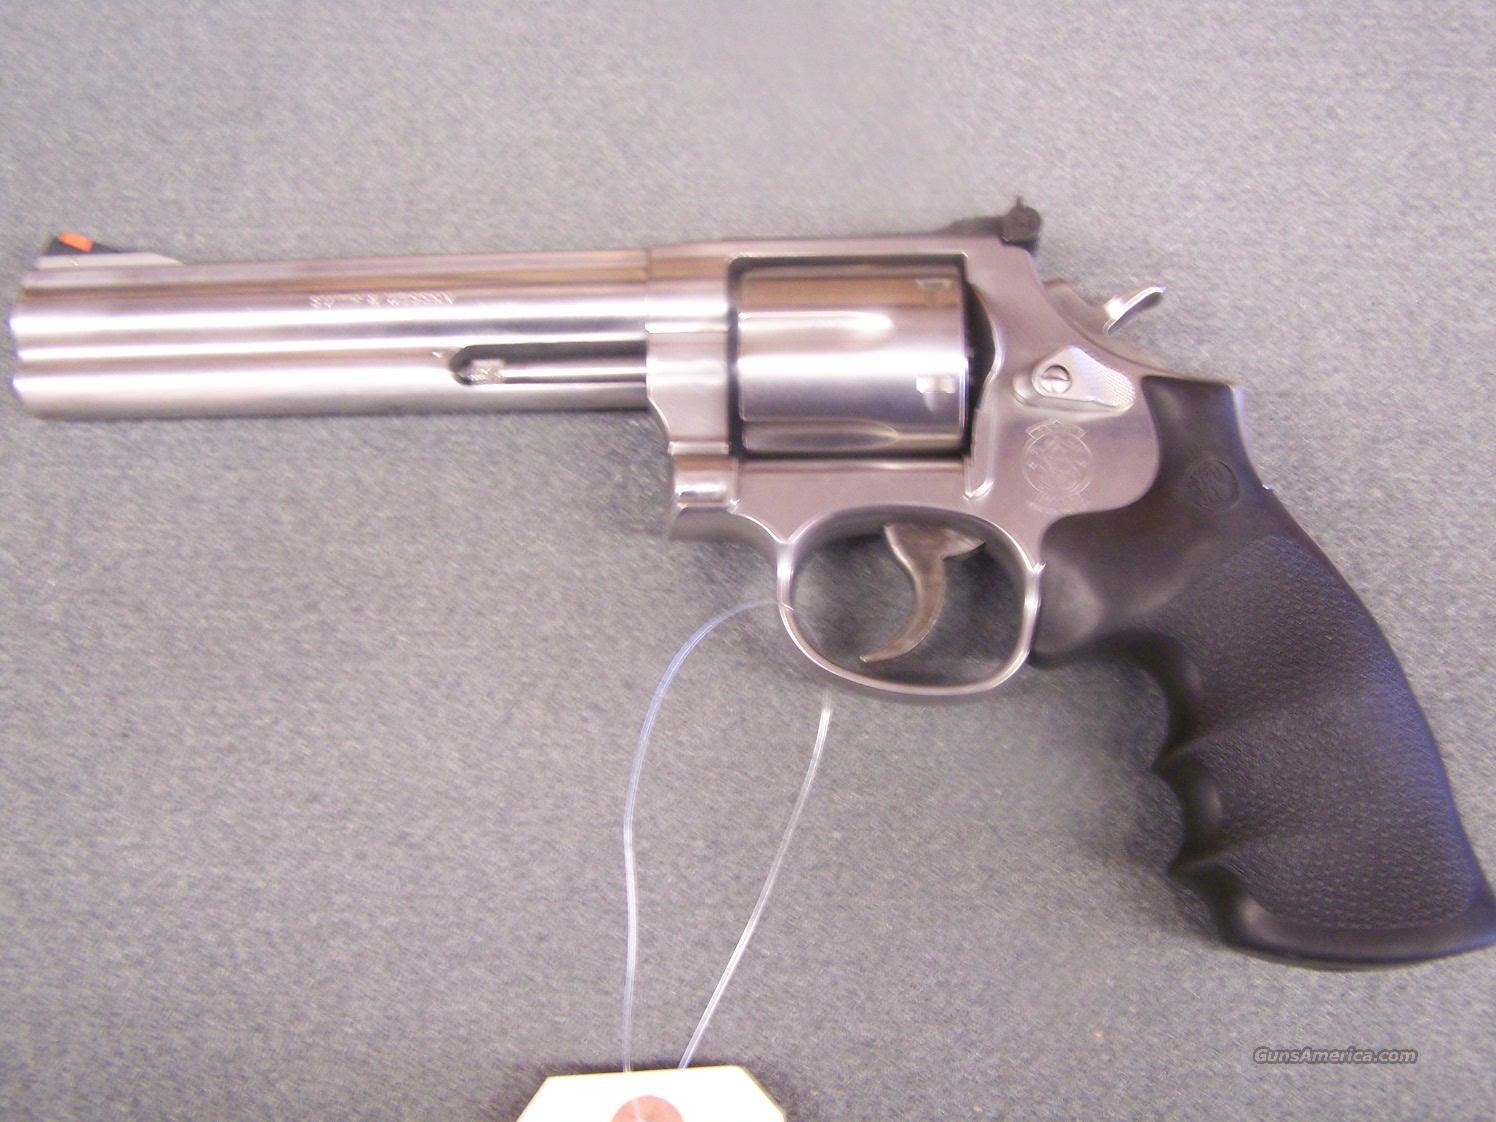 Smith & Wesson 686-5  Guns > Pistols > Smith & Wesson Revolvers > Full Frame Revolver